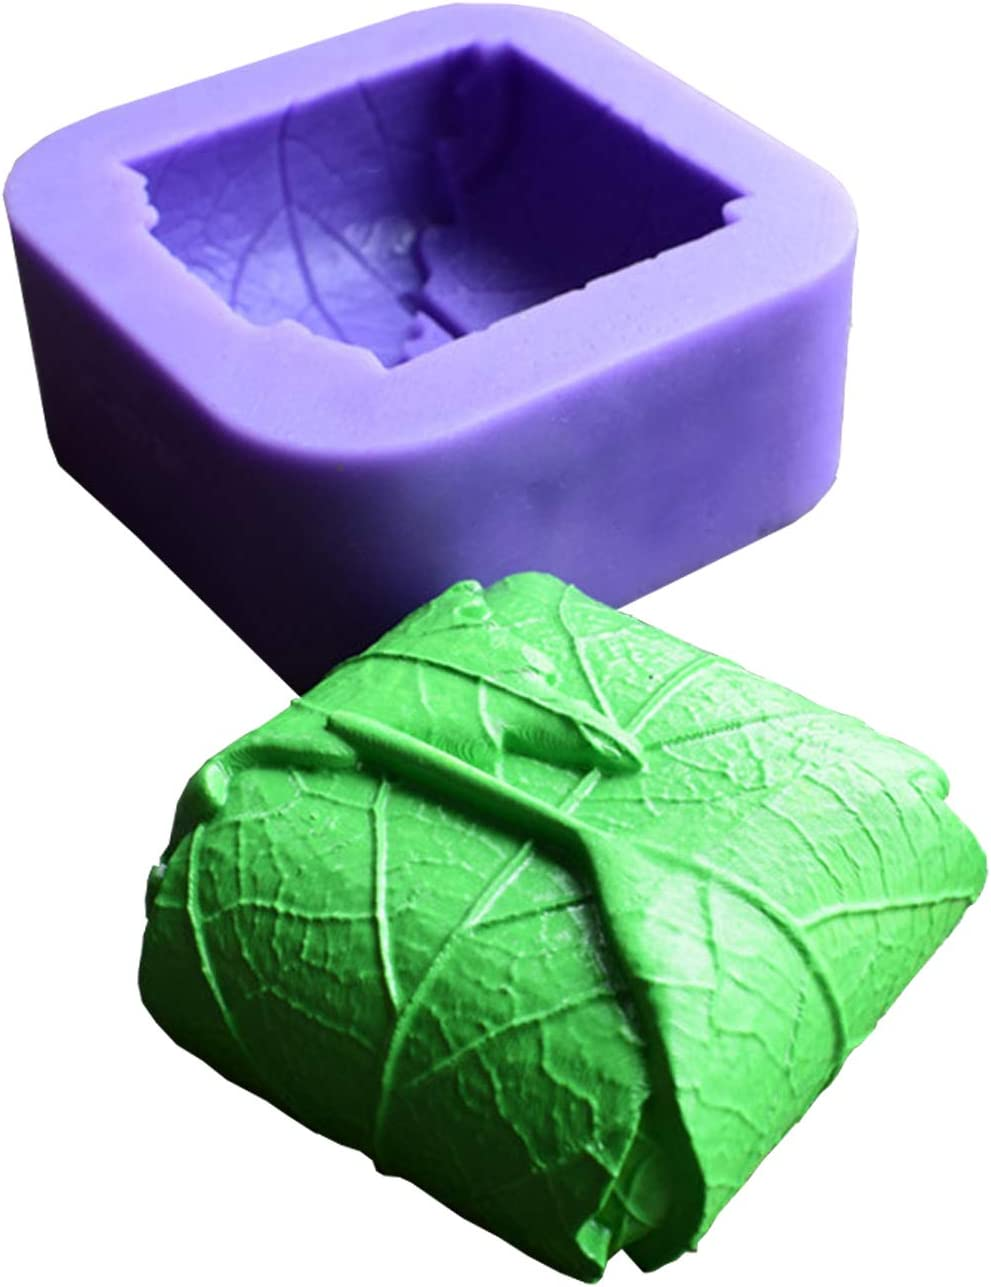 Leaves Silicone Candle Molds Cuboid with Leaves Soap Molds,Runloo Chocolate Cake Baking Moulds Fondant Cake Leaves Molds (Square Leaves)